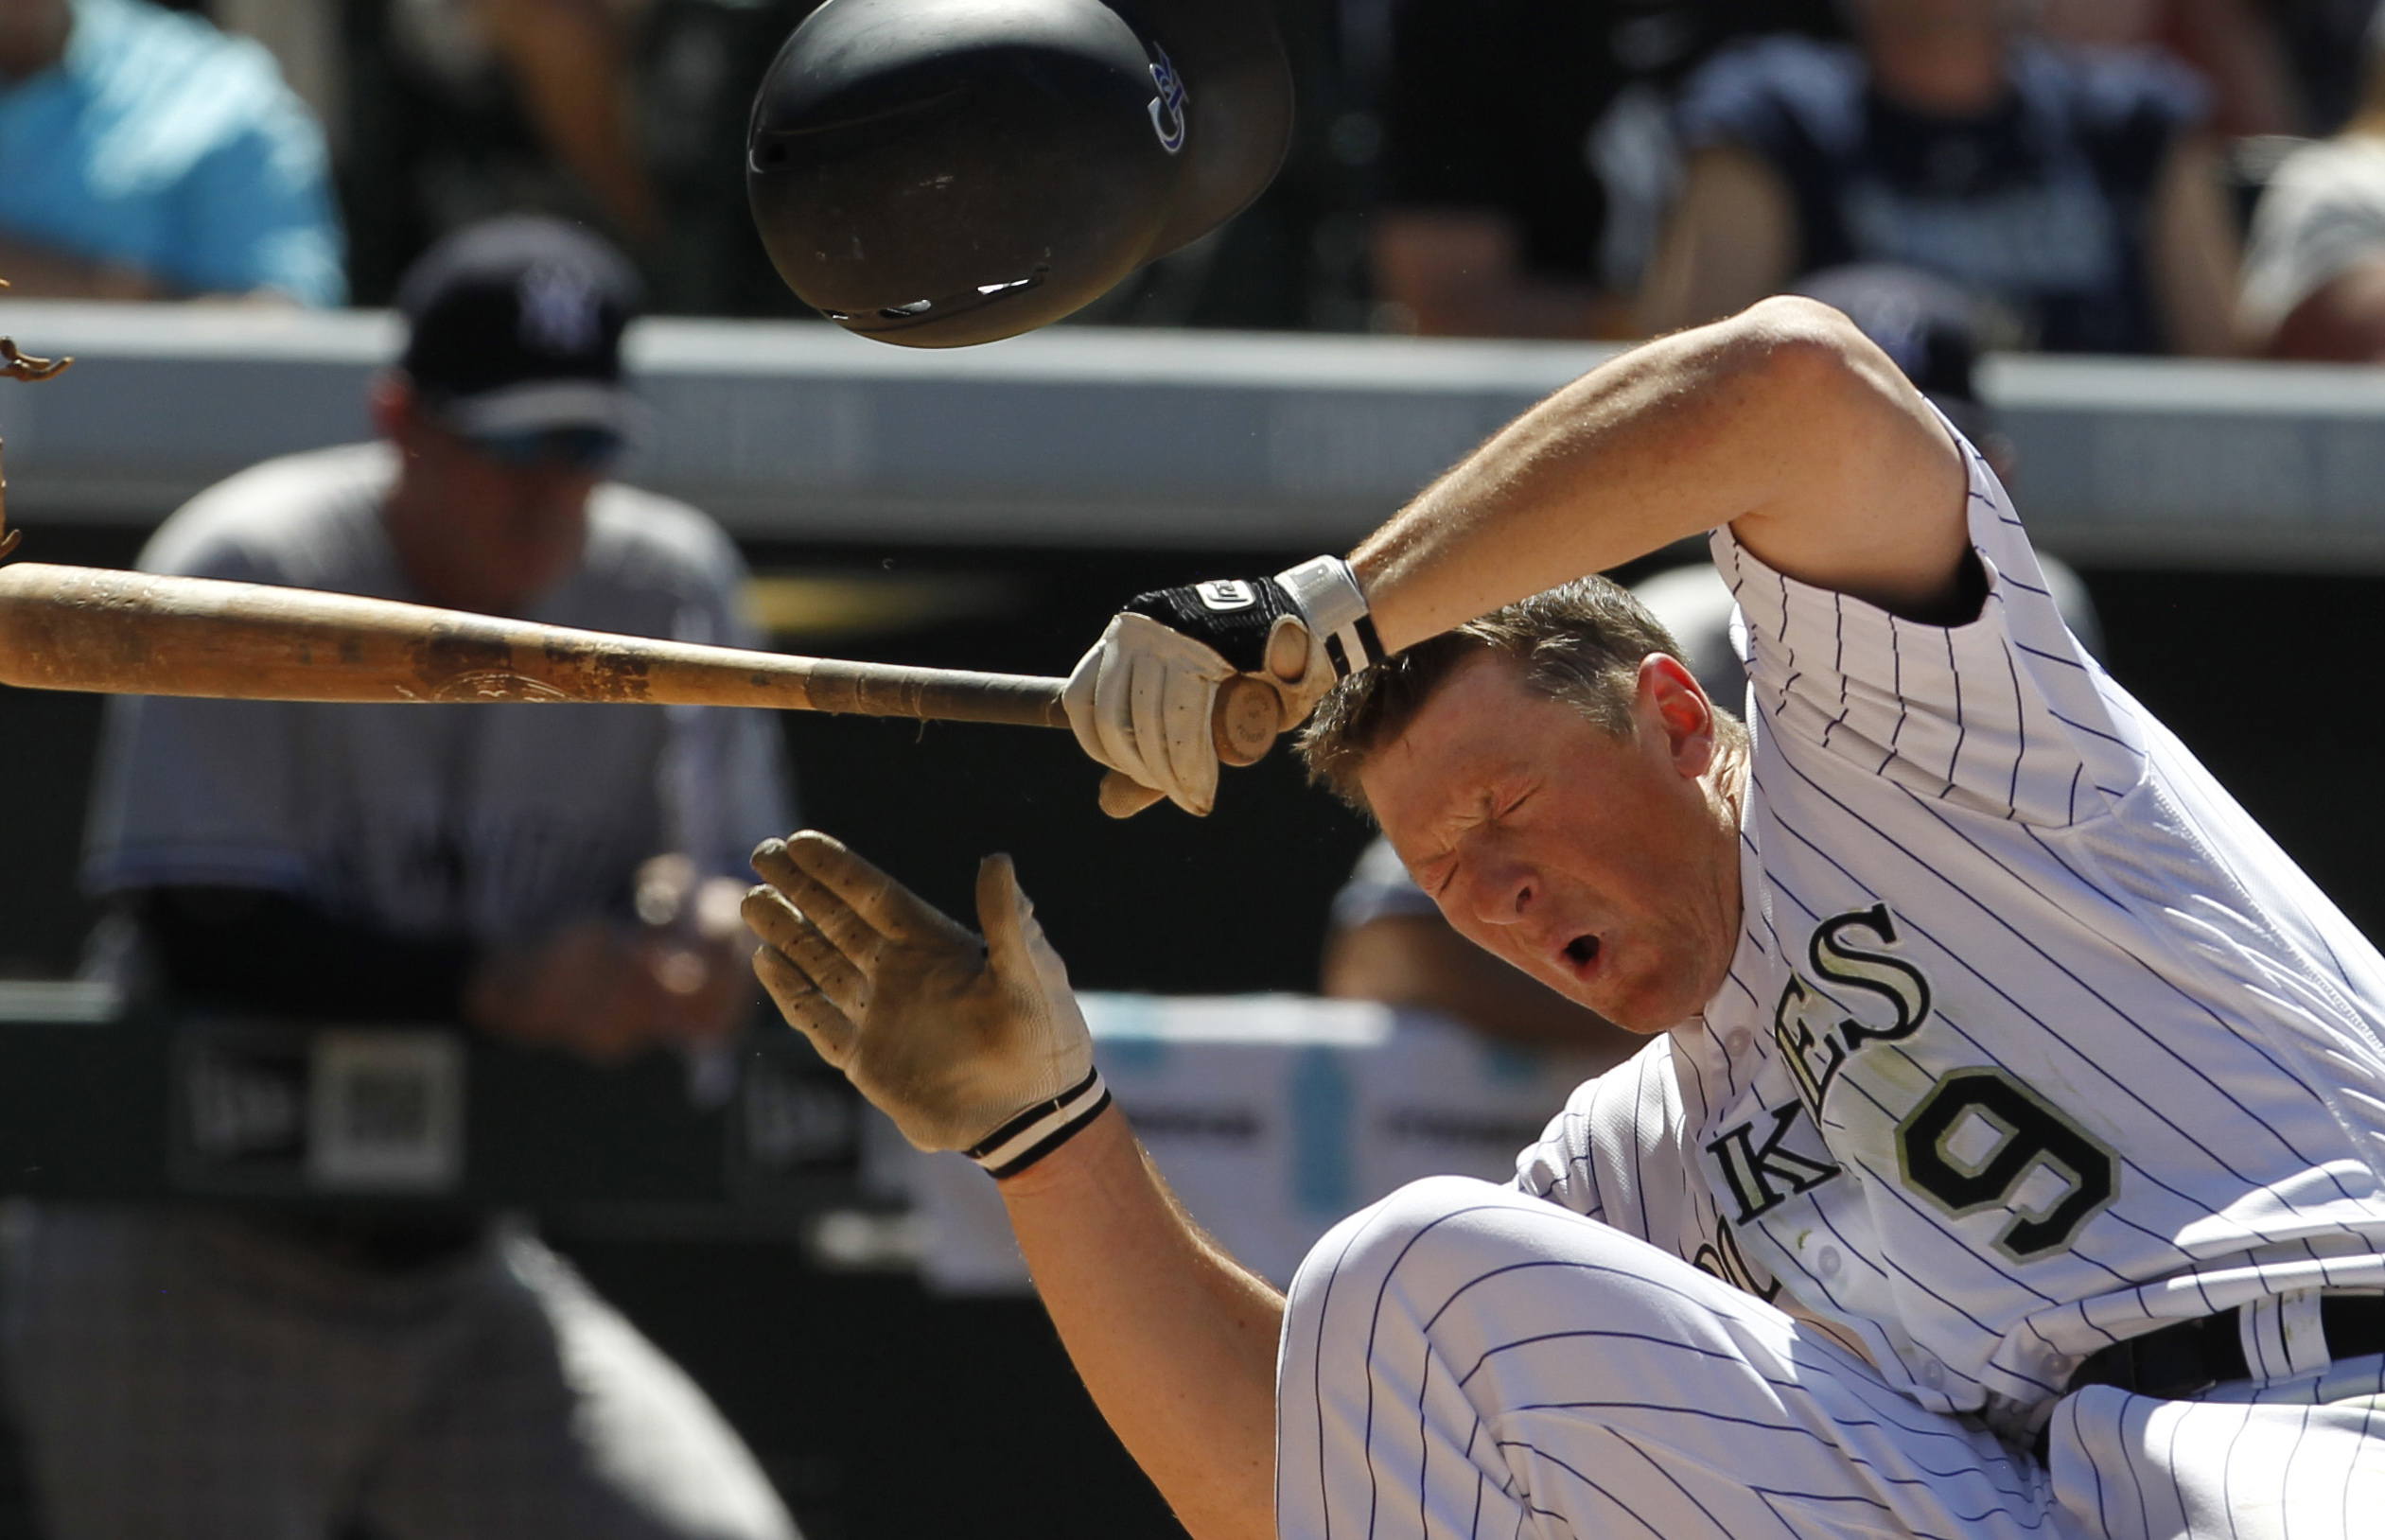 DJ LeMahieu of the Colorado Rockies falls after being hit in the head by a pitch thrown by pitcher Anthony Swarzak #43 of the New York Yankees in the sixth inning at Coors Field on June 15, 2016.(Photo by Joe Mahoney/Getty Images)